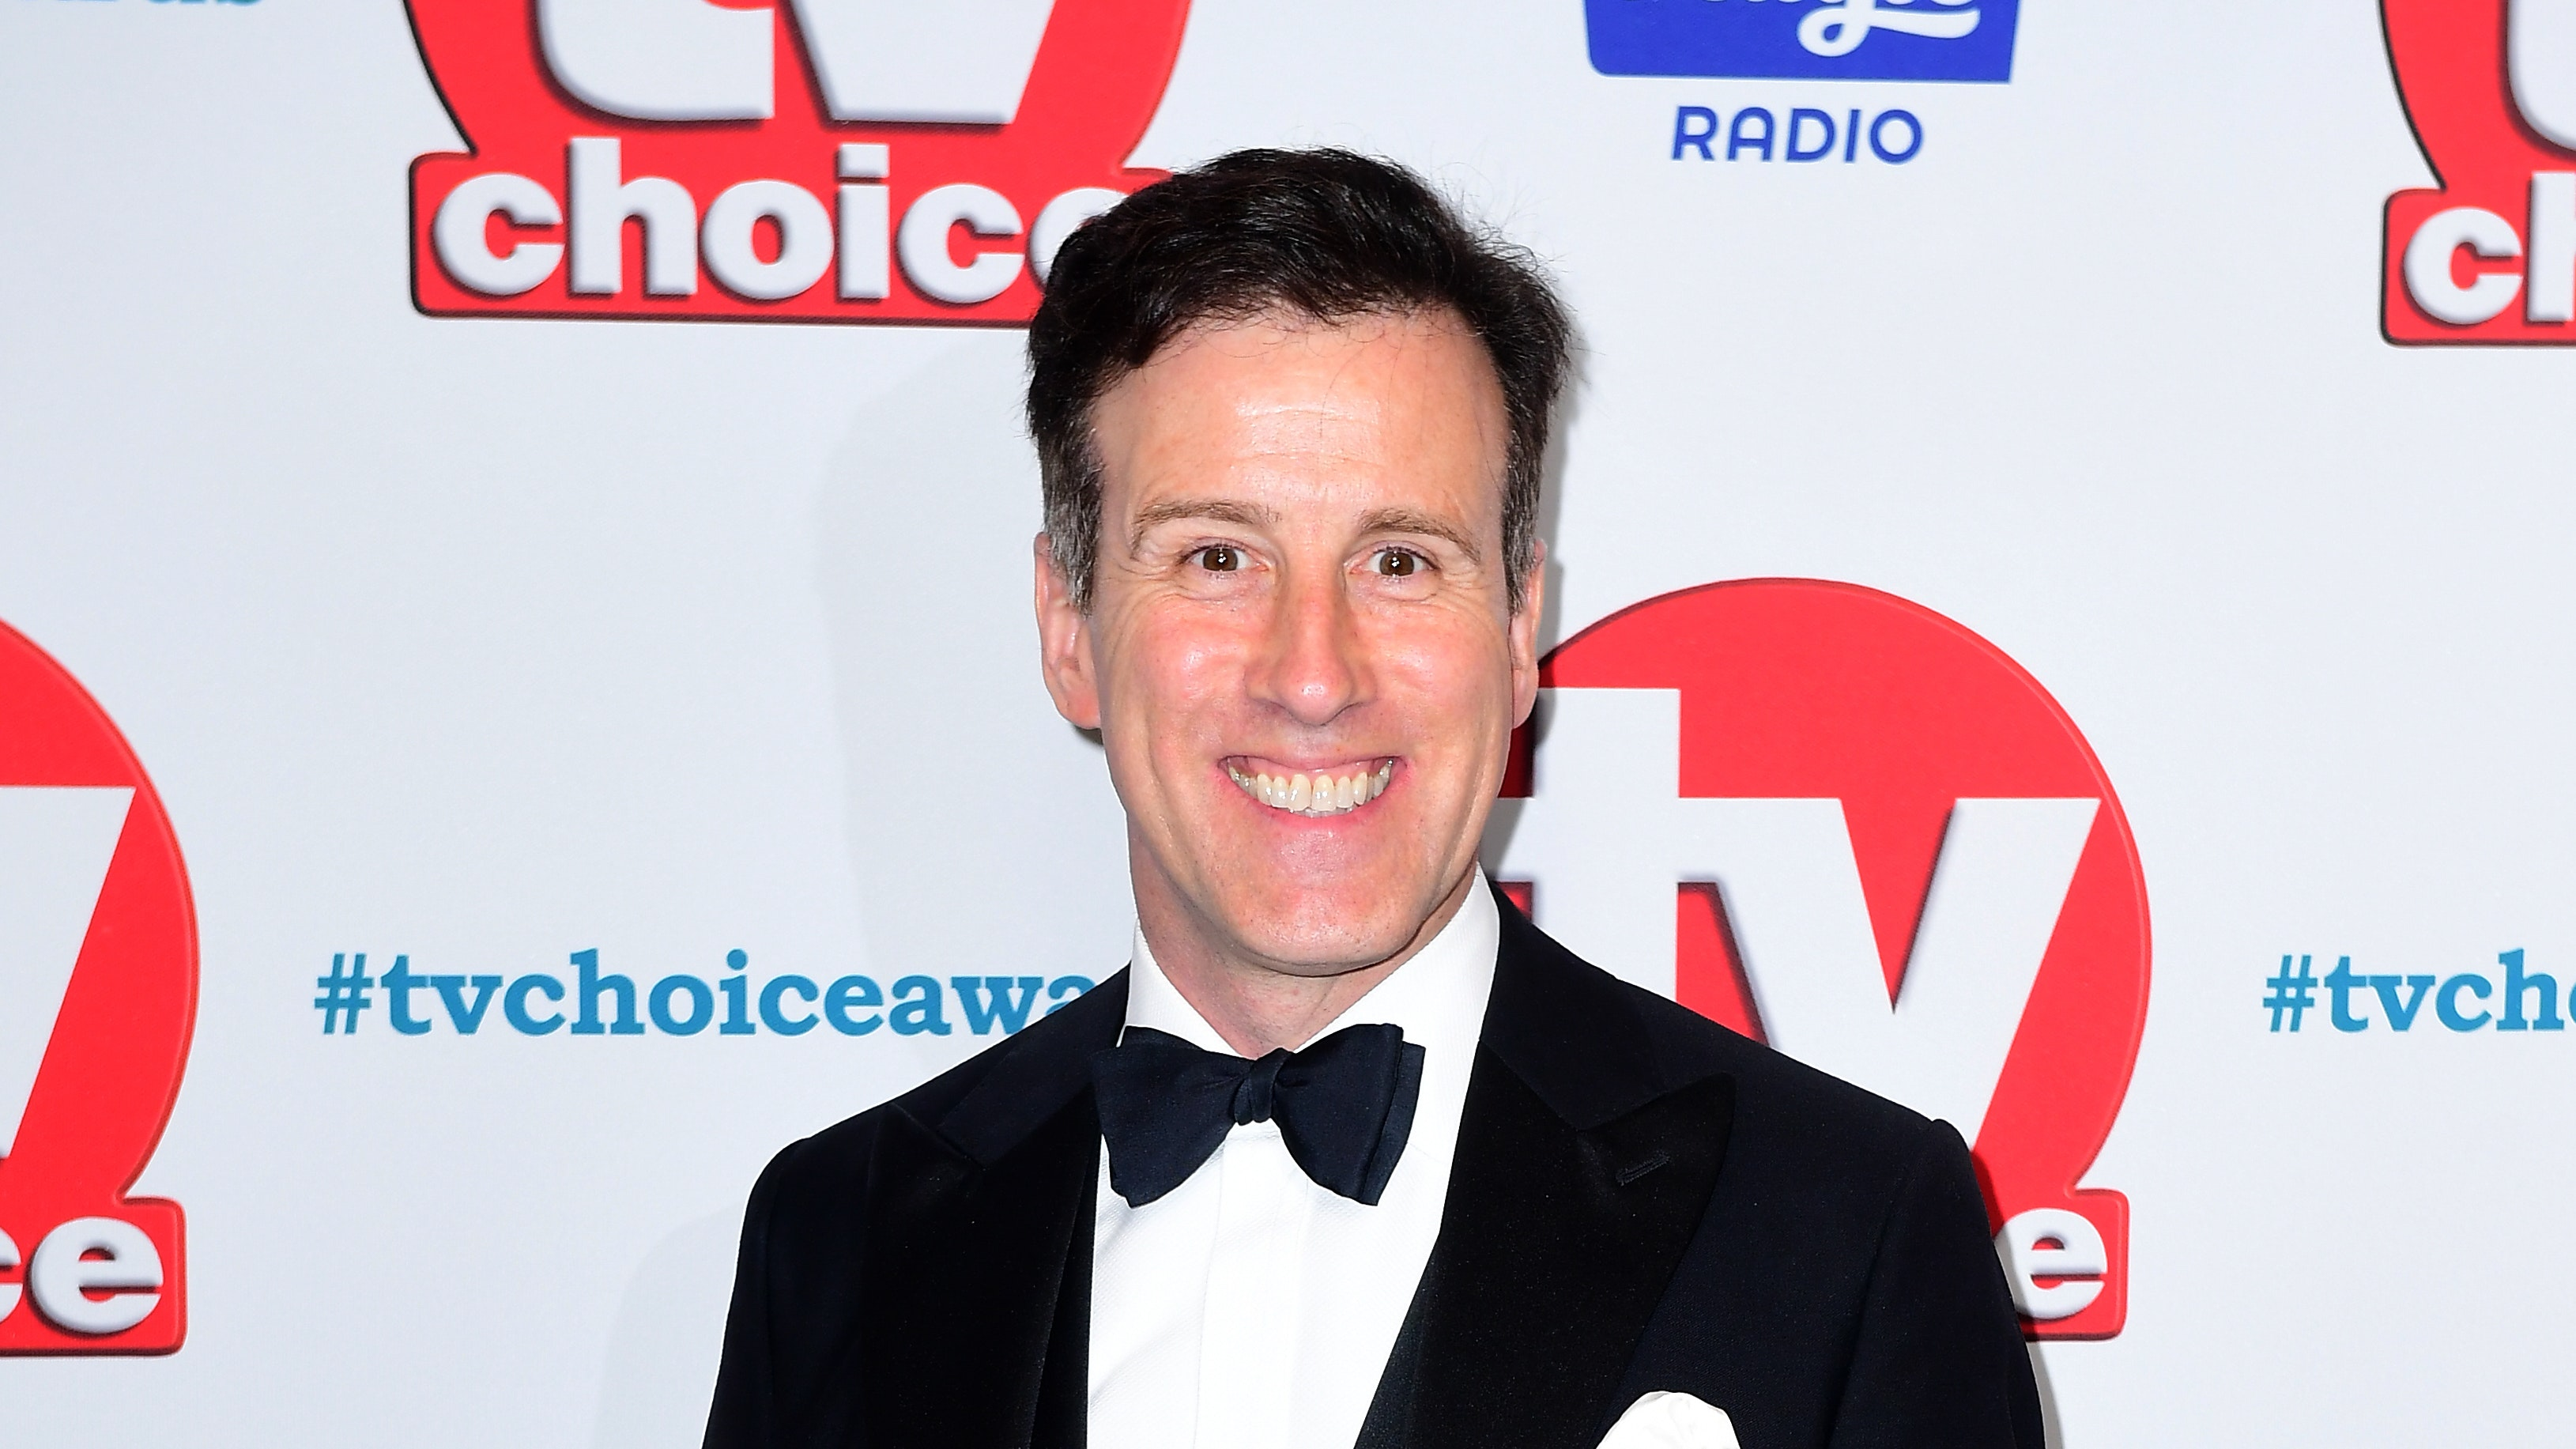 Anton Du Beke 'backed to be Strictly Come Dancing's new judge'